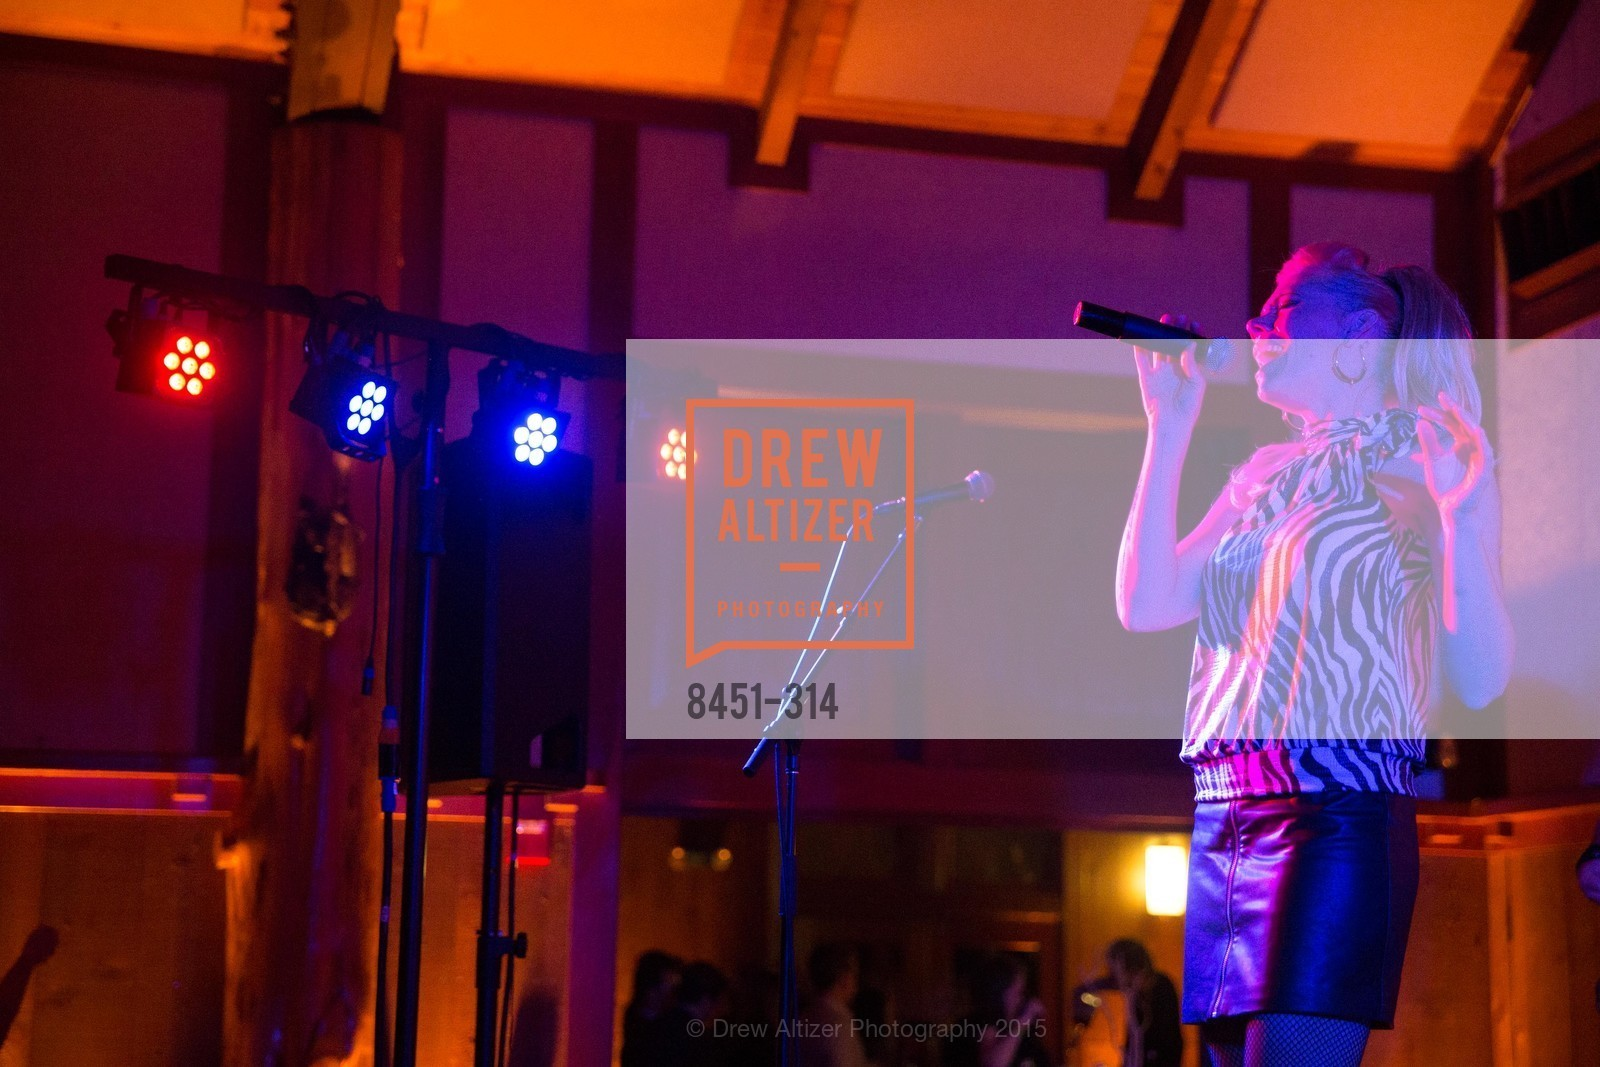 Performance, San Francisco Zoo Fur Ball, San Francisco Zoo, September 25th, 2015,Drew Altizer, Drew Altizer Photography, full-service agency, private events, San Francisco photographer, photographer california